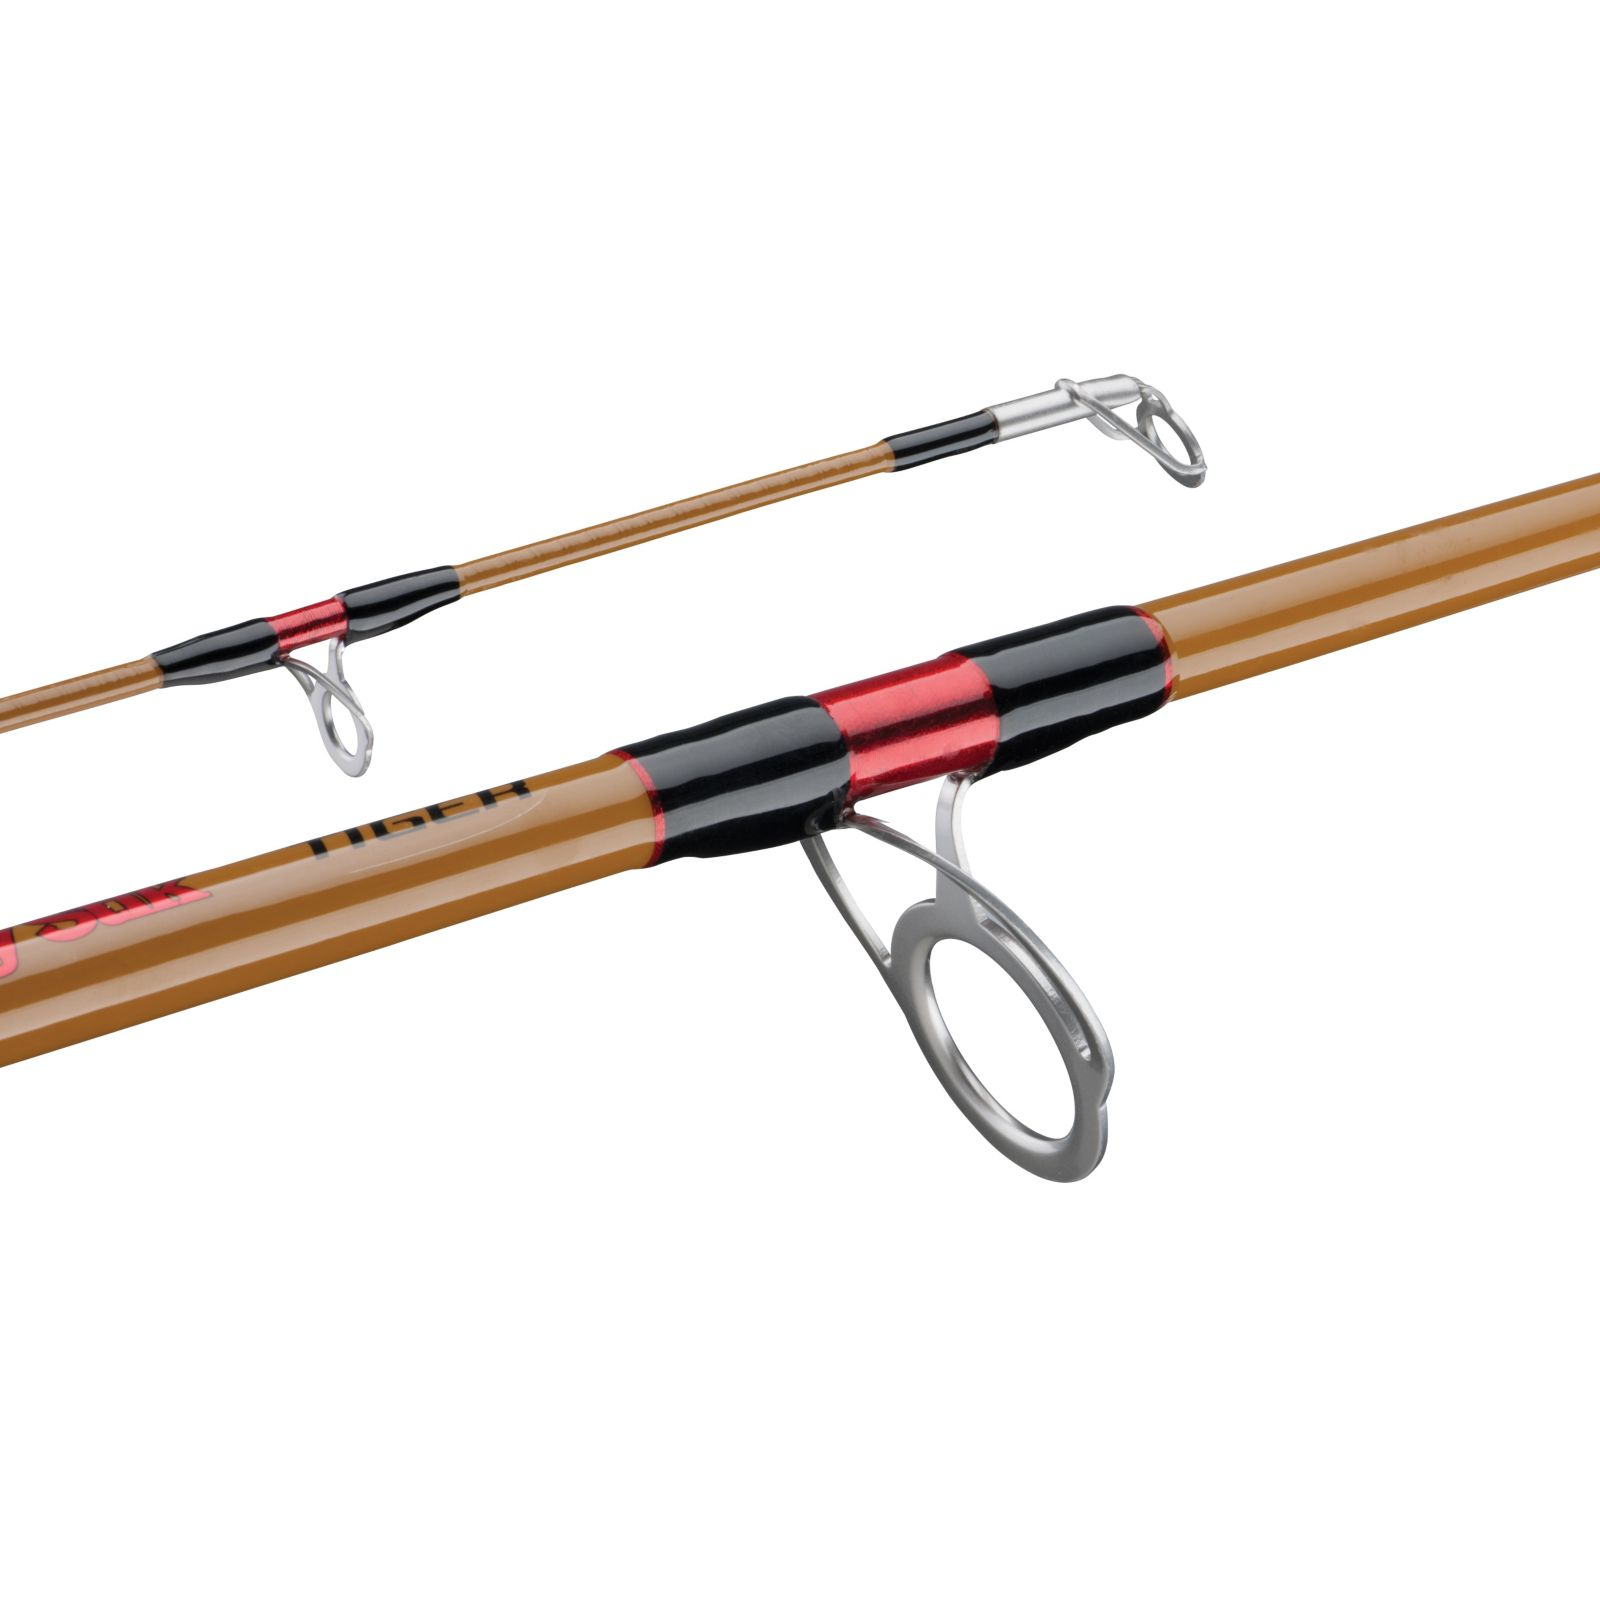 Ugly stik tiger spinning rod maumee tackle for Ugly stick fishing rods